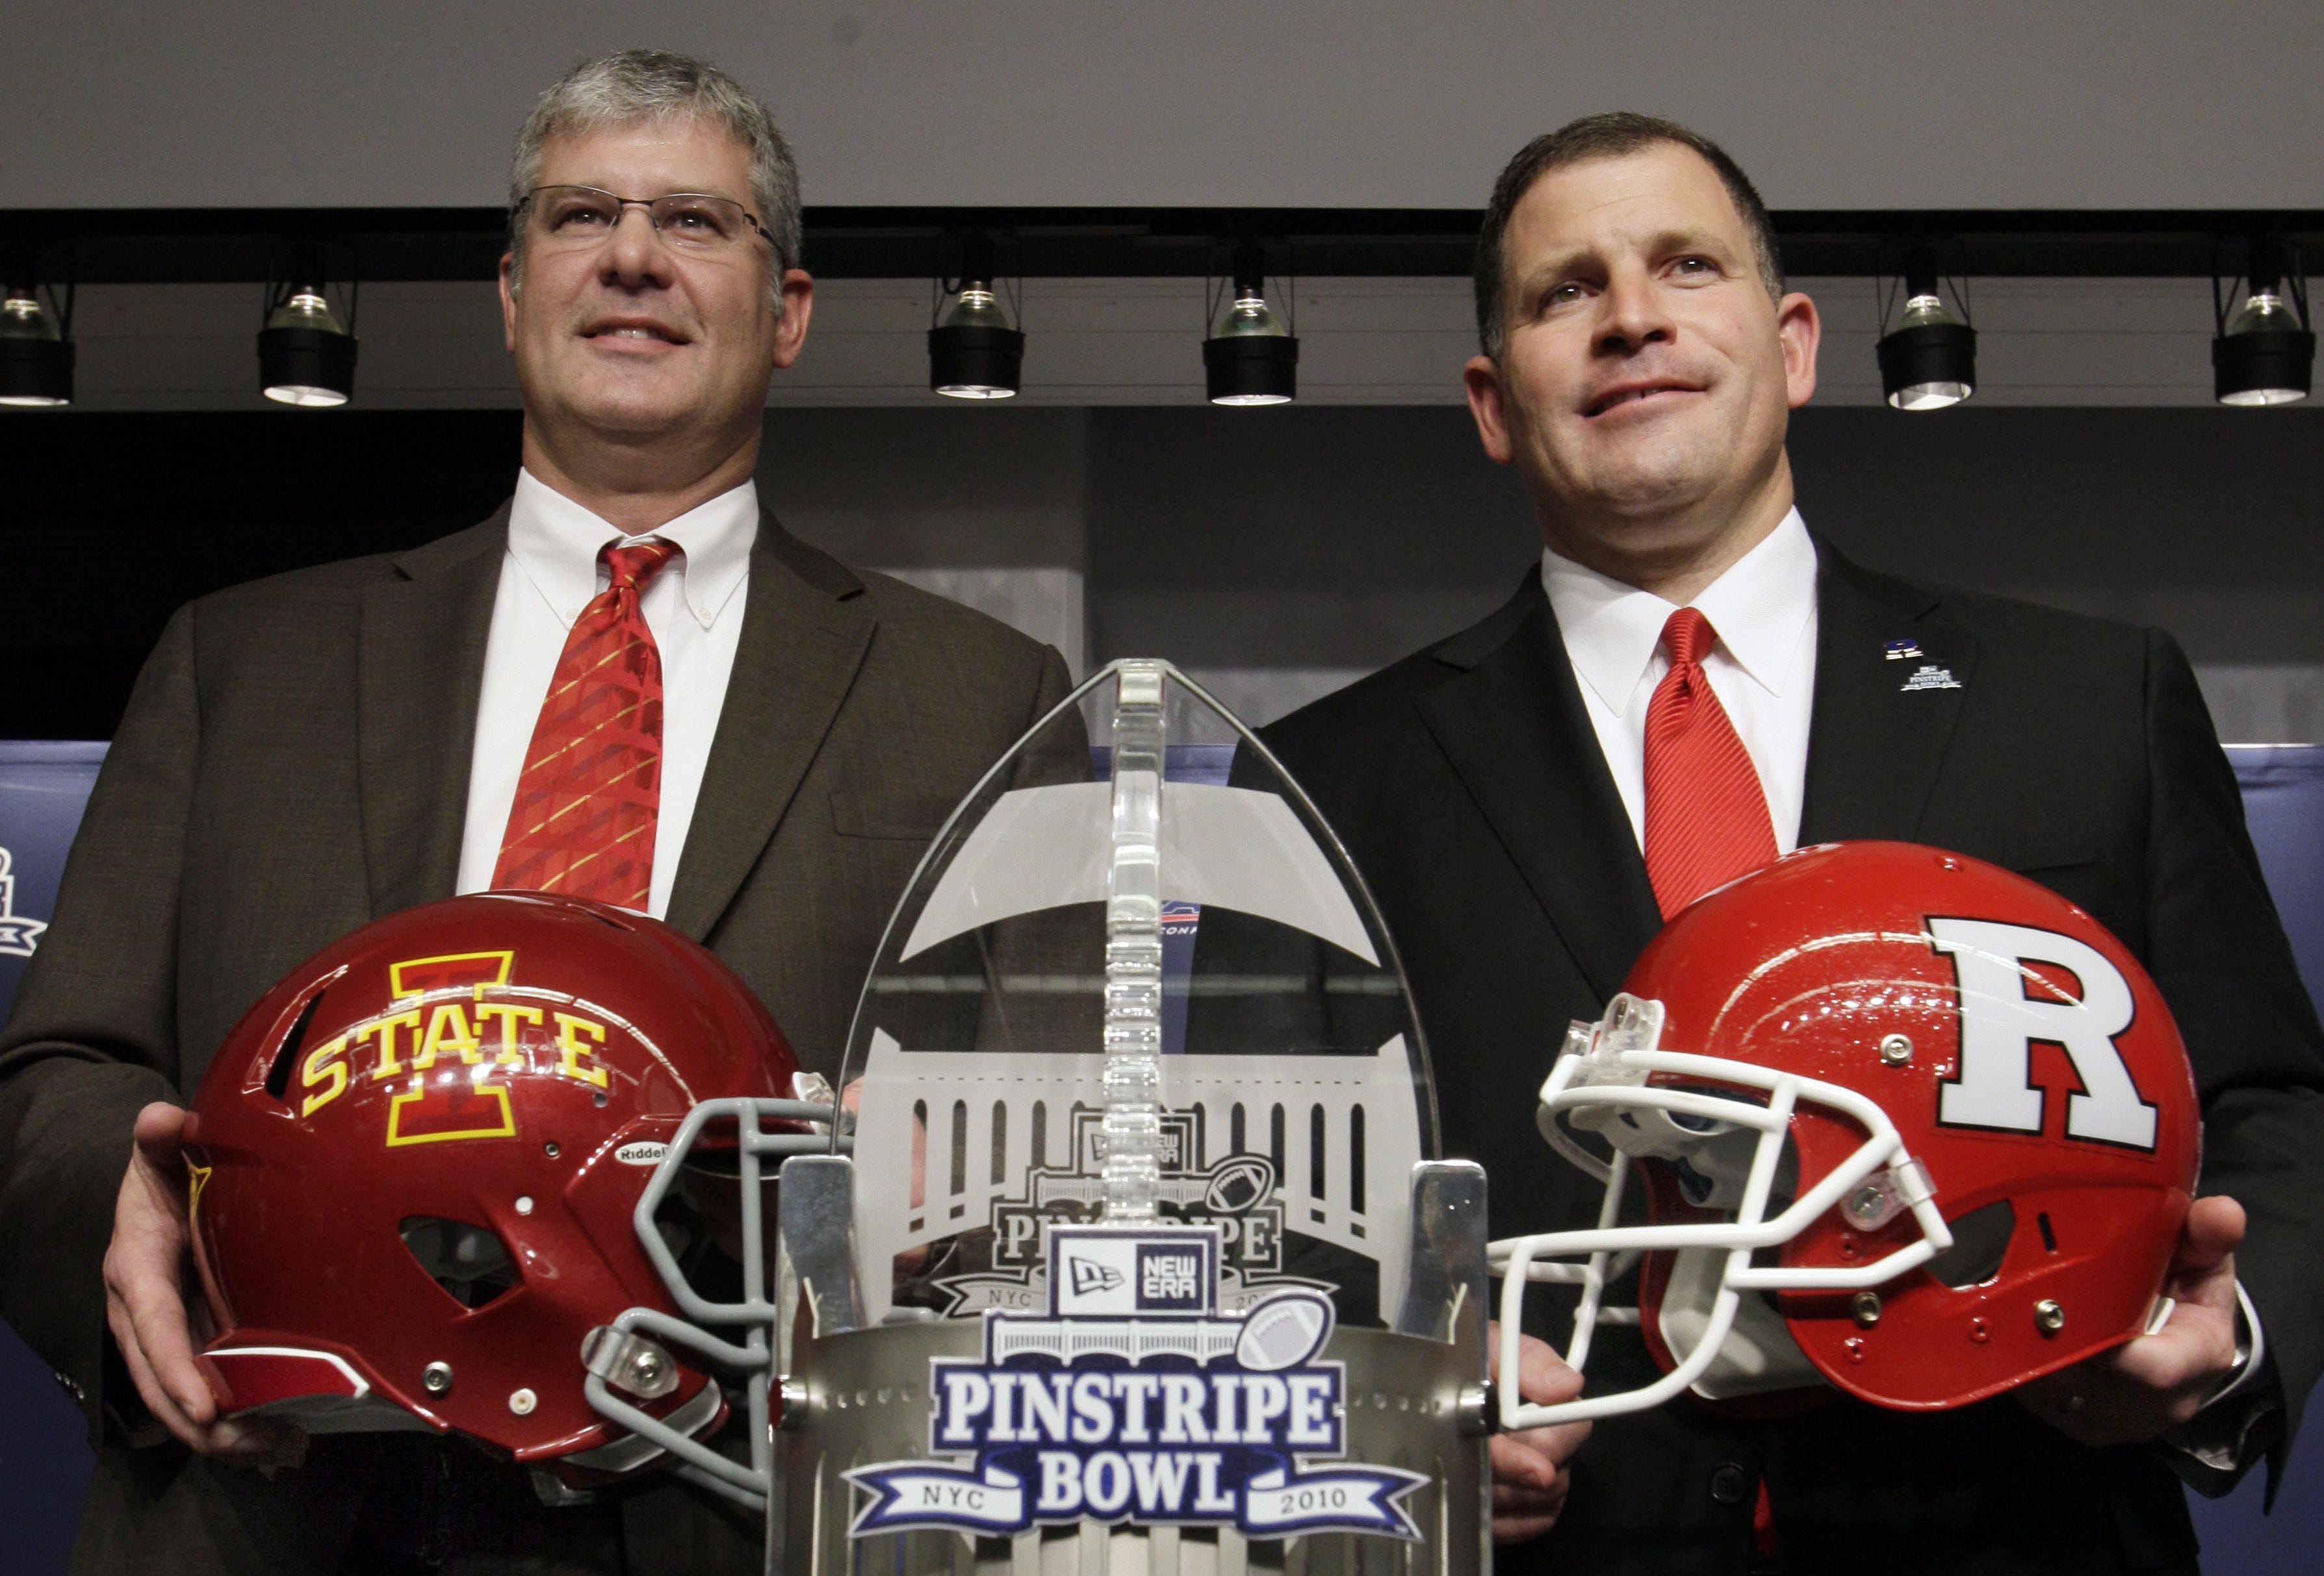 Rutgers coach Greg Schiano, right, and Iowa State coach Paul Rhoads pose for photos during an NCAA college football news conference at New York's Yankee Stadium,  Wednesday, Dec. 7, 2011. The two teams are slated to meet in the New Era Pinstripe Bowl at the stadium on Dec. 30, 2011.